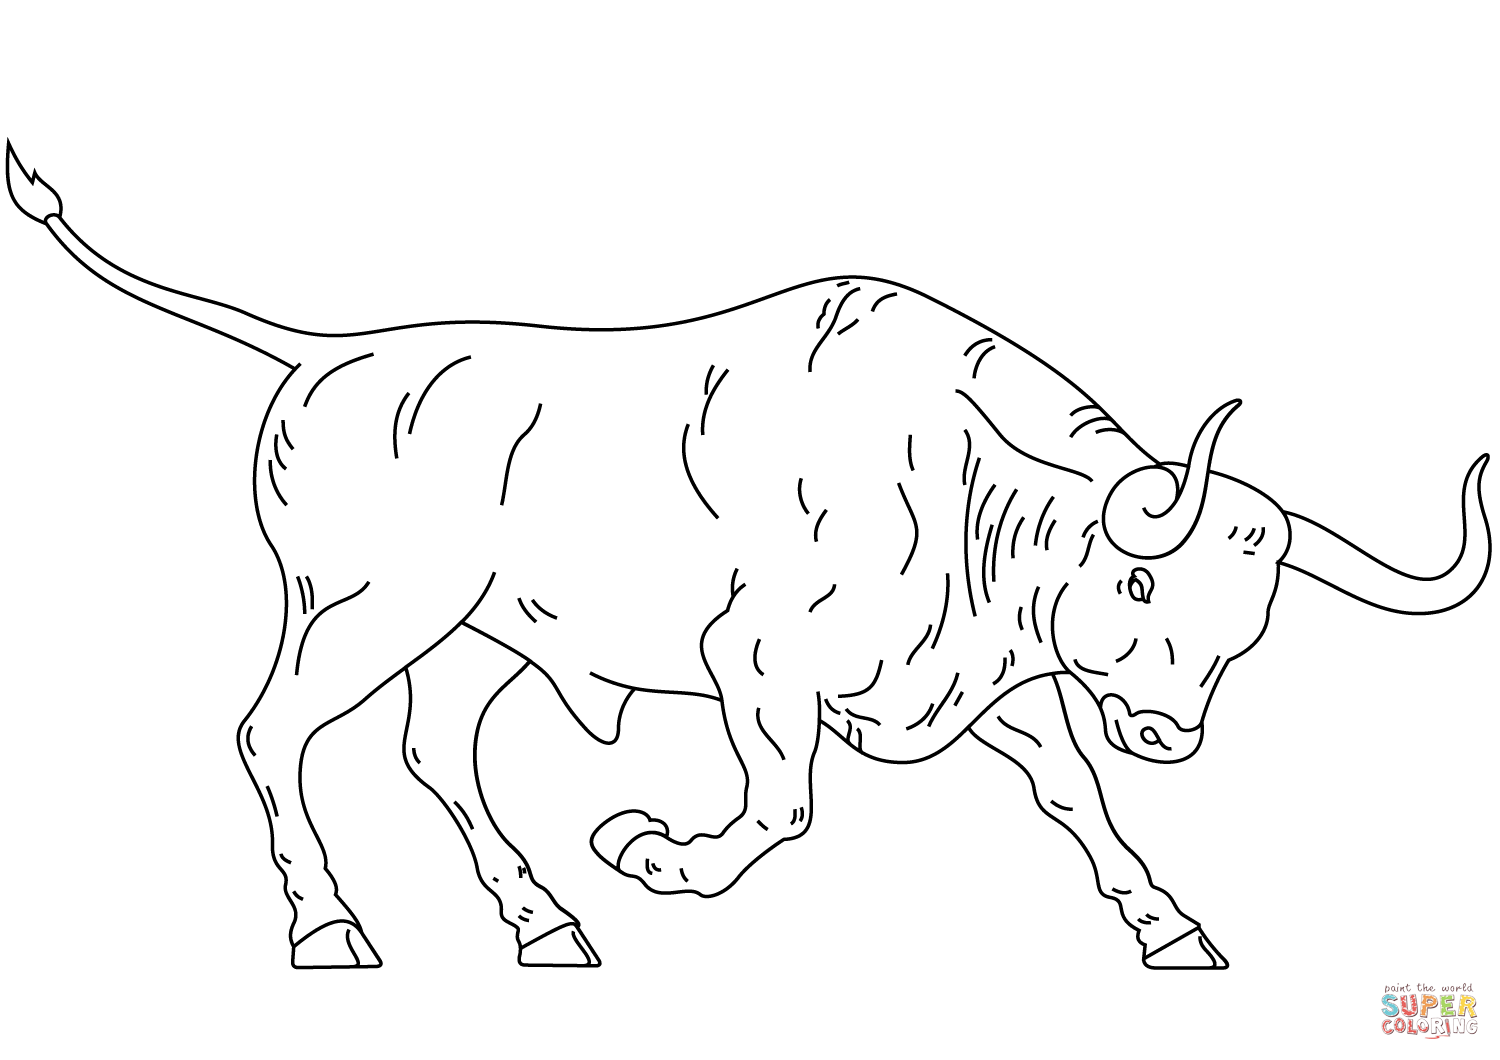 Spanish Fighting Bull Coloring Page